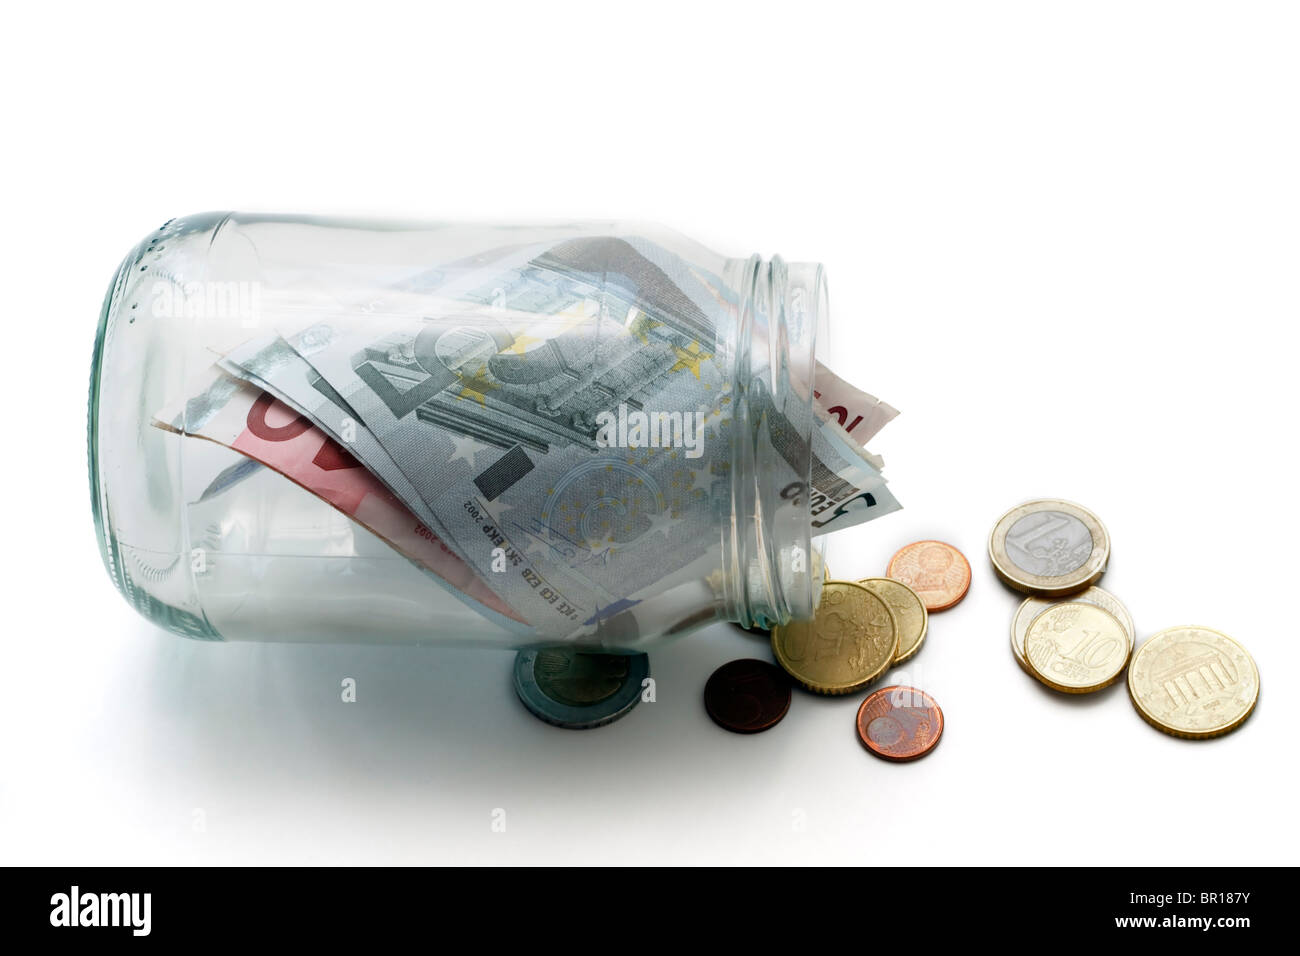 Money jar with Euros - Stock Image